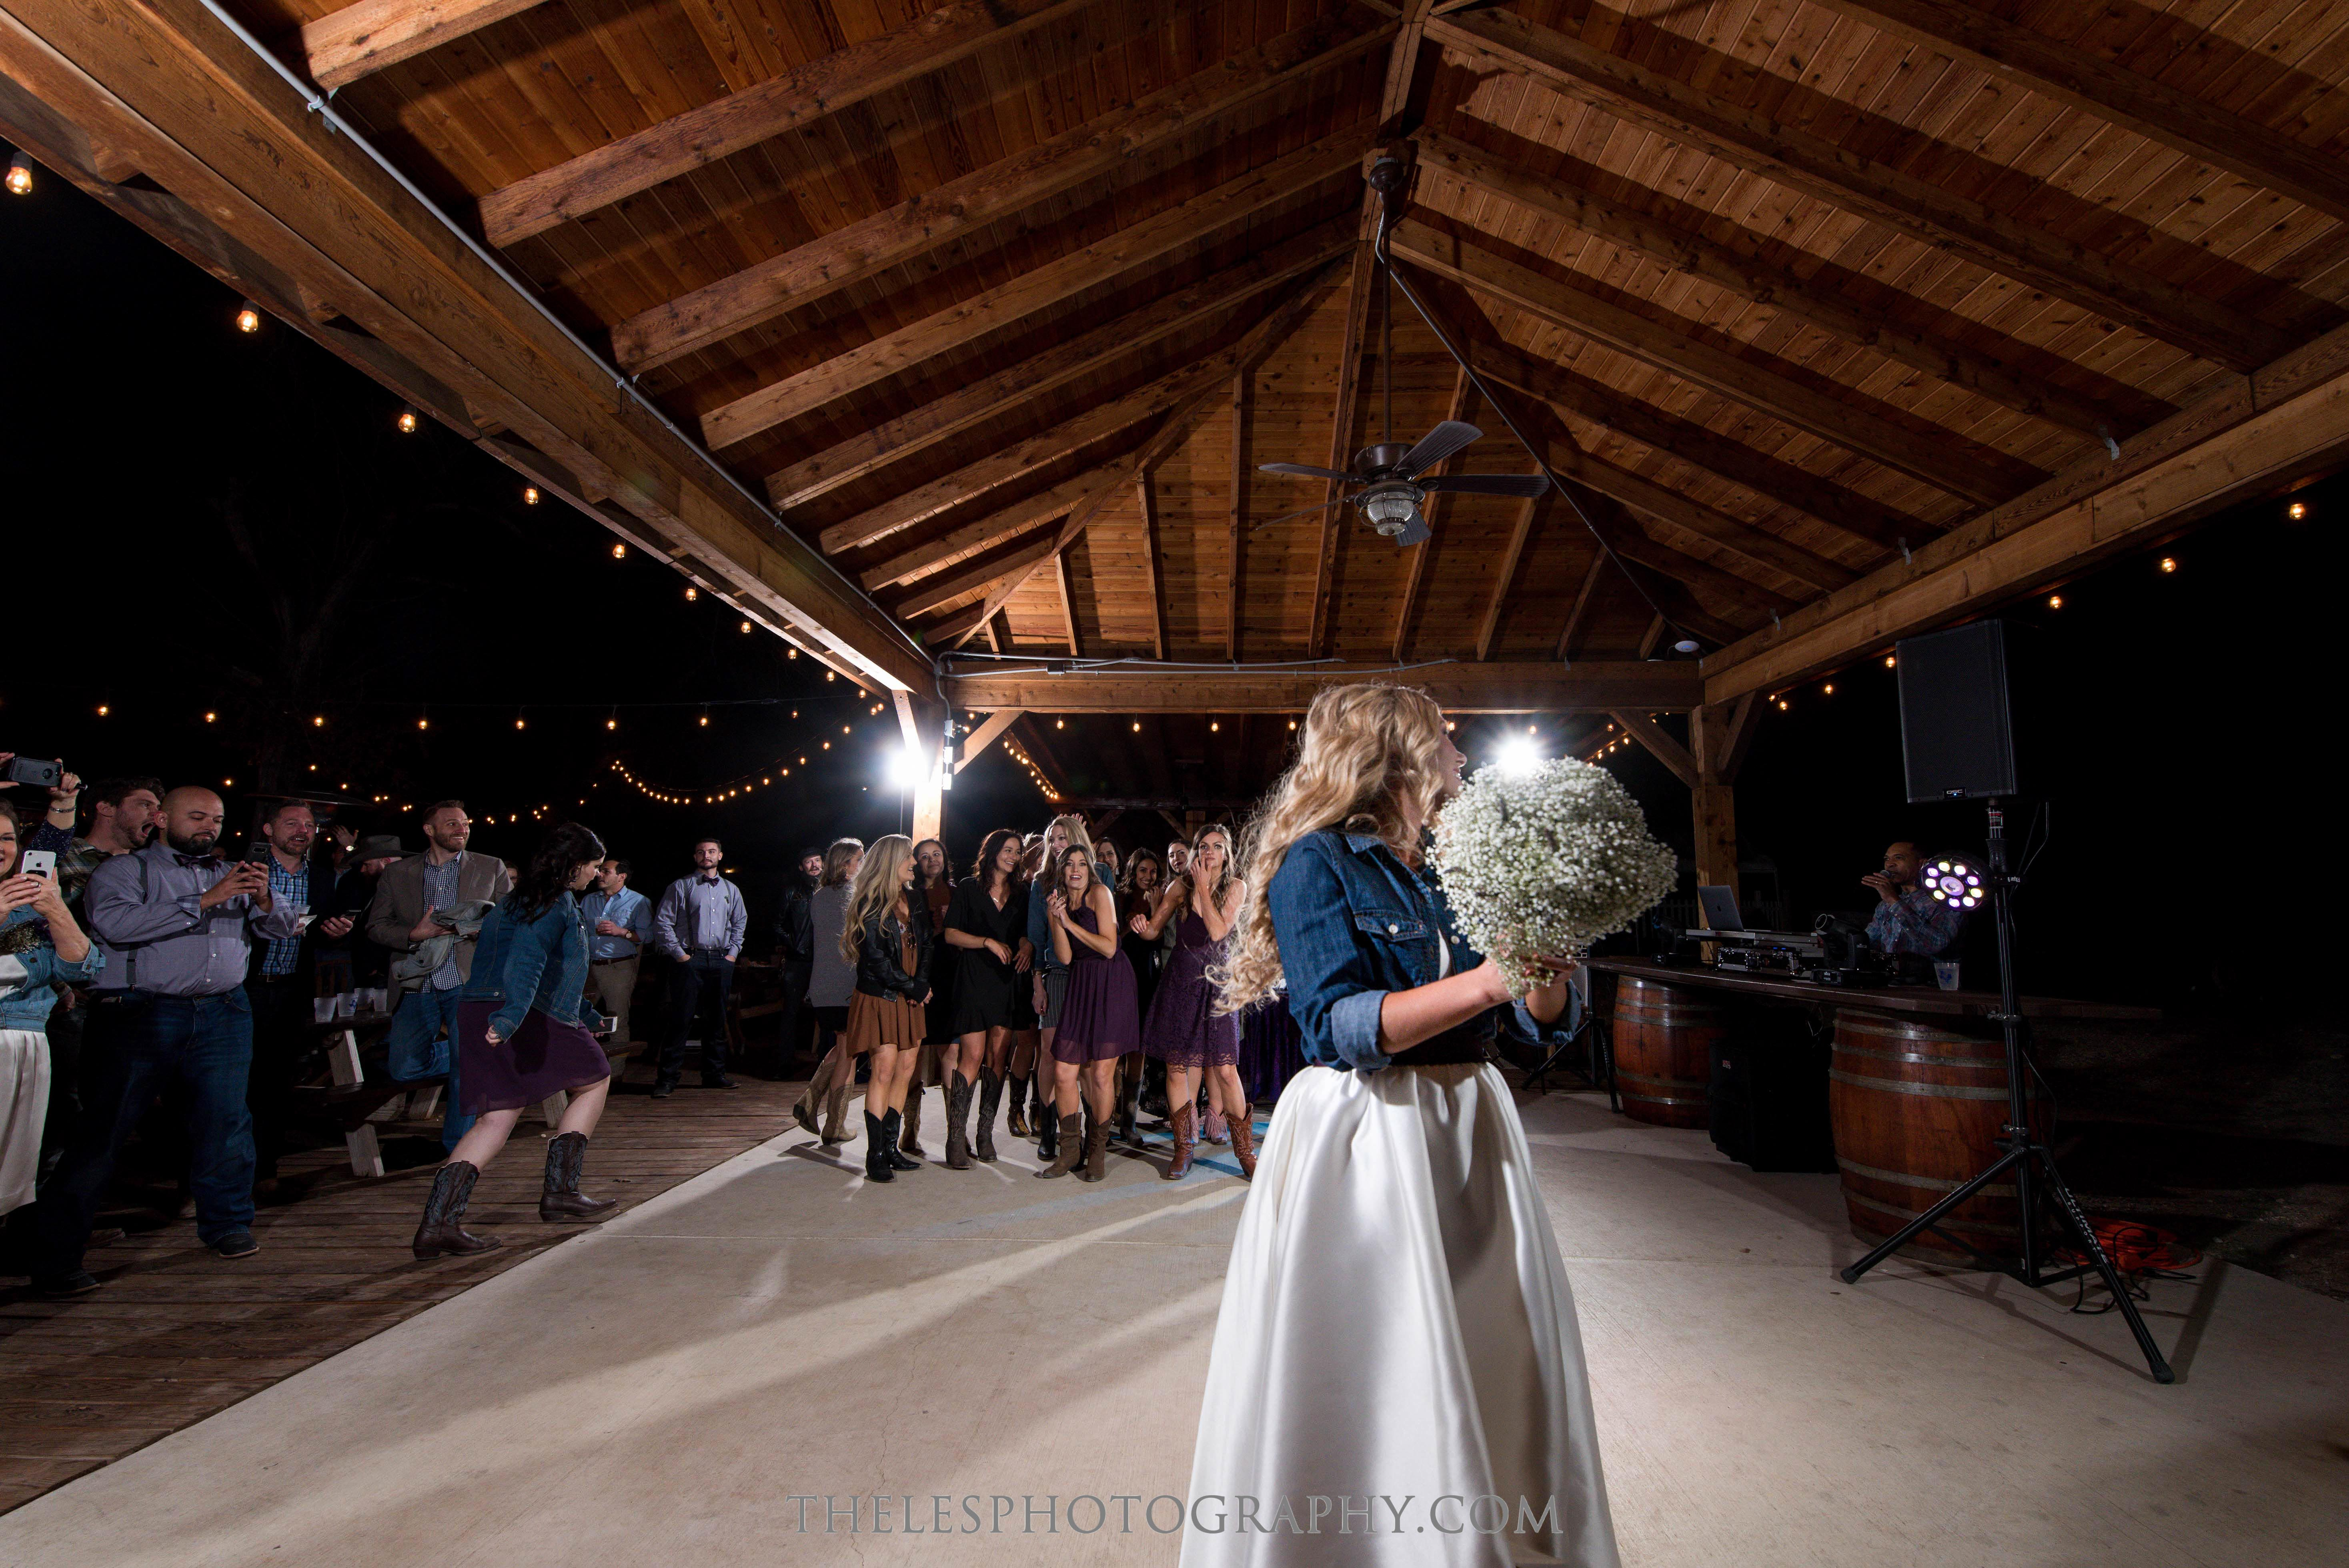 122 Dallas Wedding Photography - Photographer - The Les Photography - Fort Country Memories Wedding